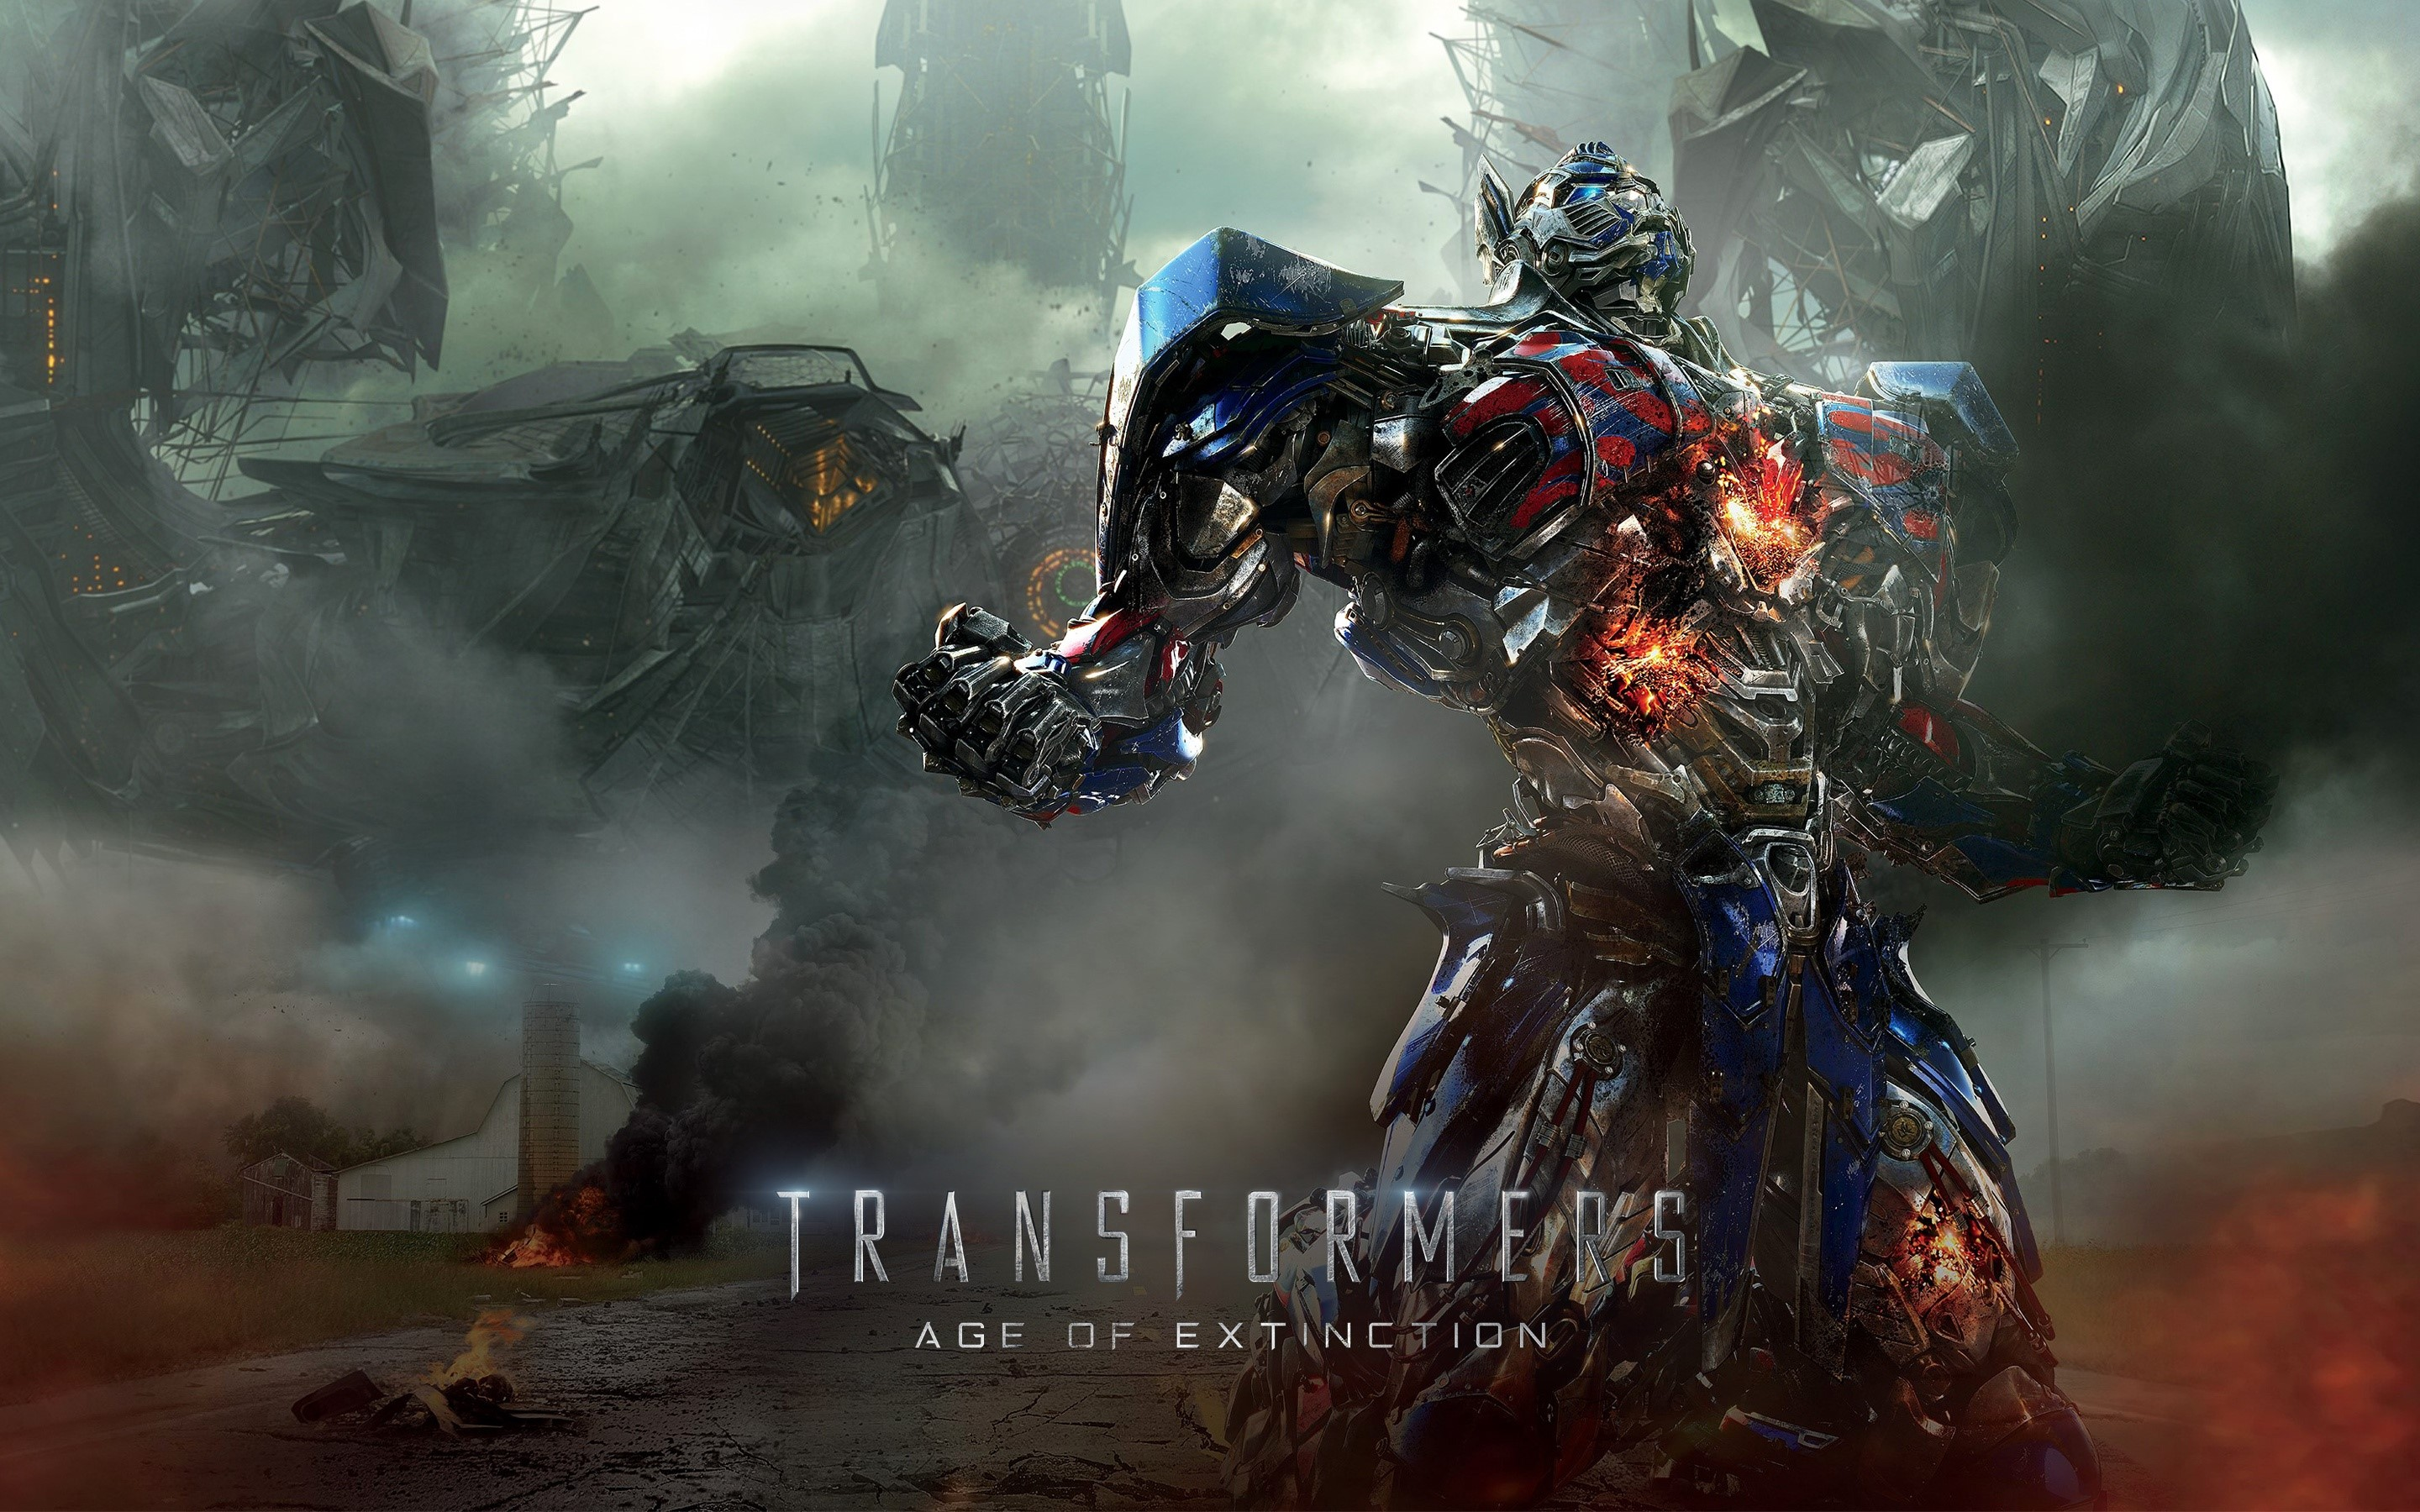 Wallpaper Transformers 4 Age of extinction 2014